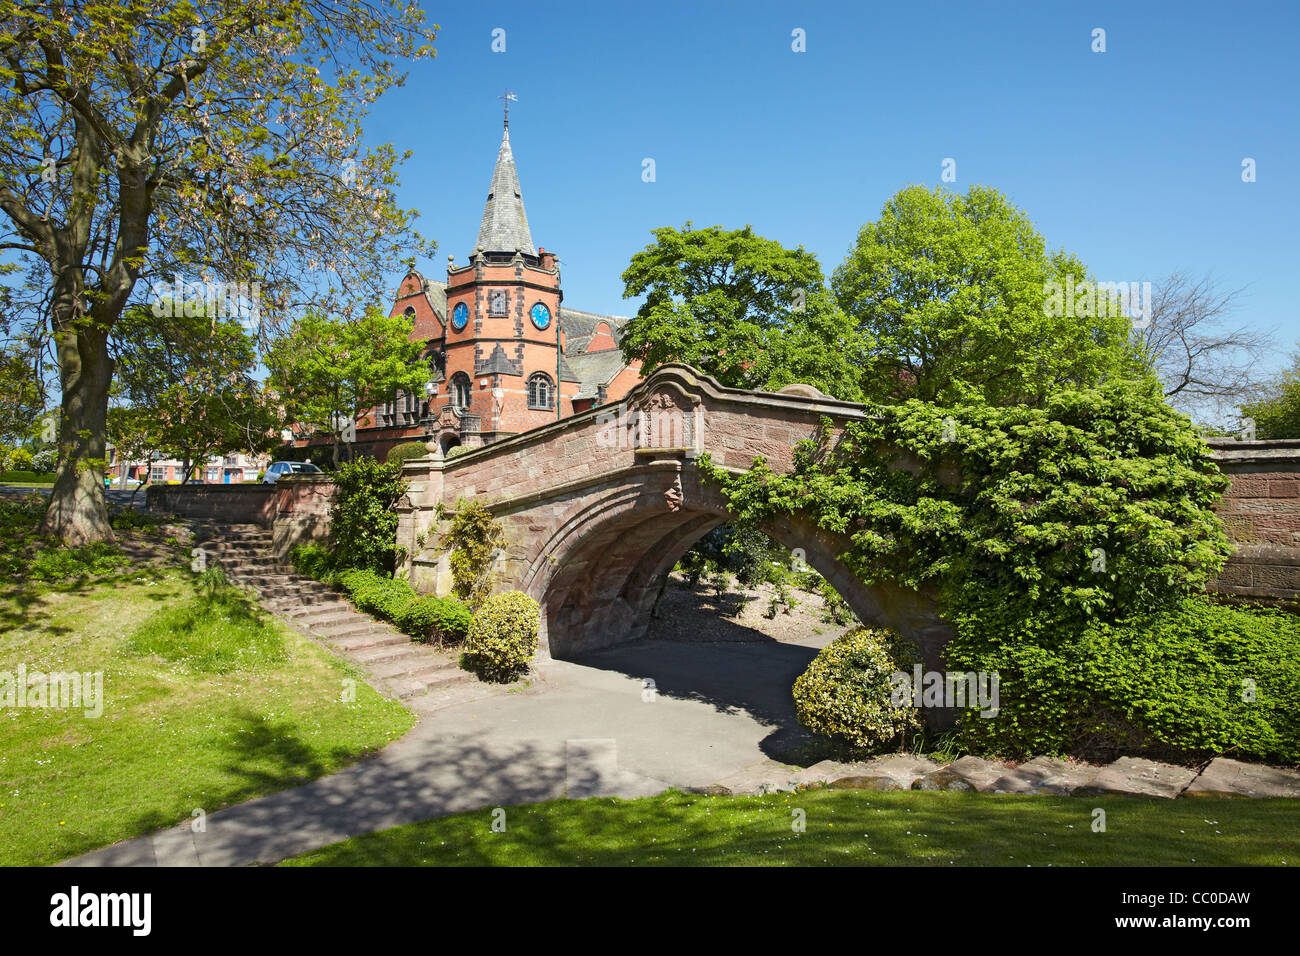 The Dell, Port Sunlight Village, Wirral, UK - Stock Image